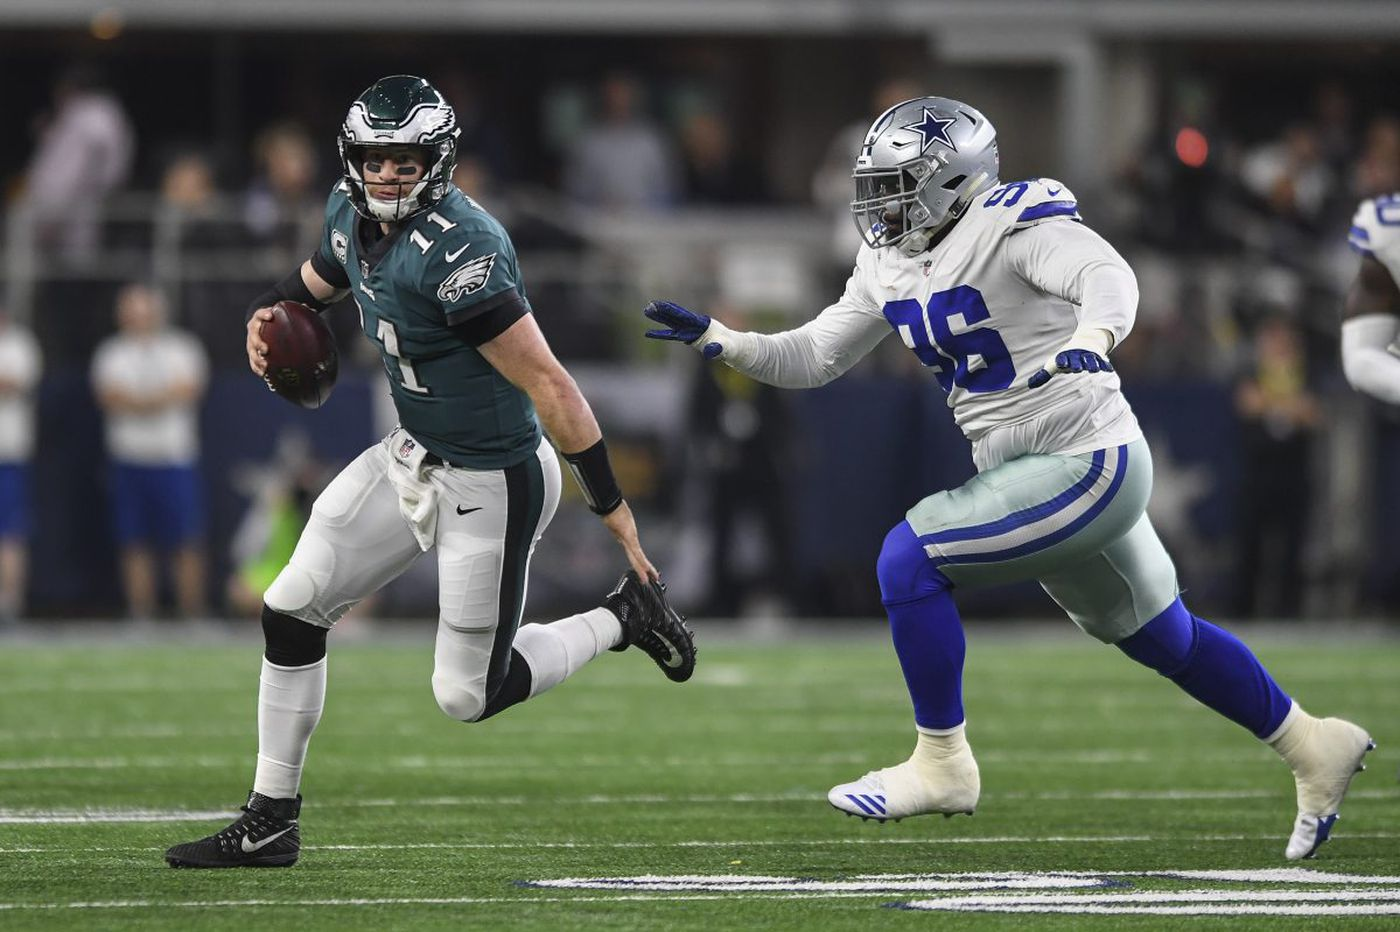 With Nick Foles, Eagles might get nicked on third down | Bob Ford